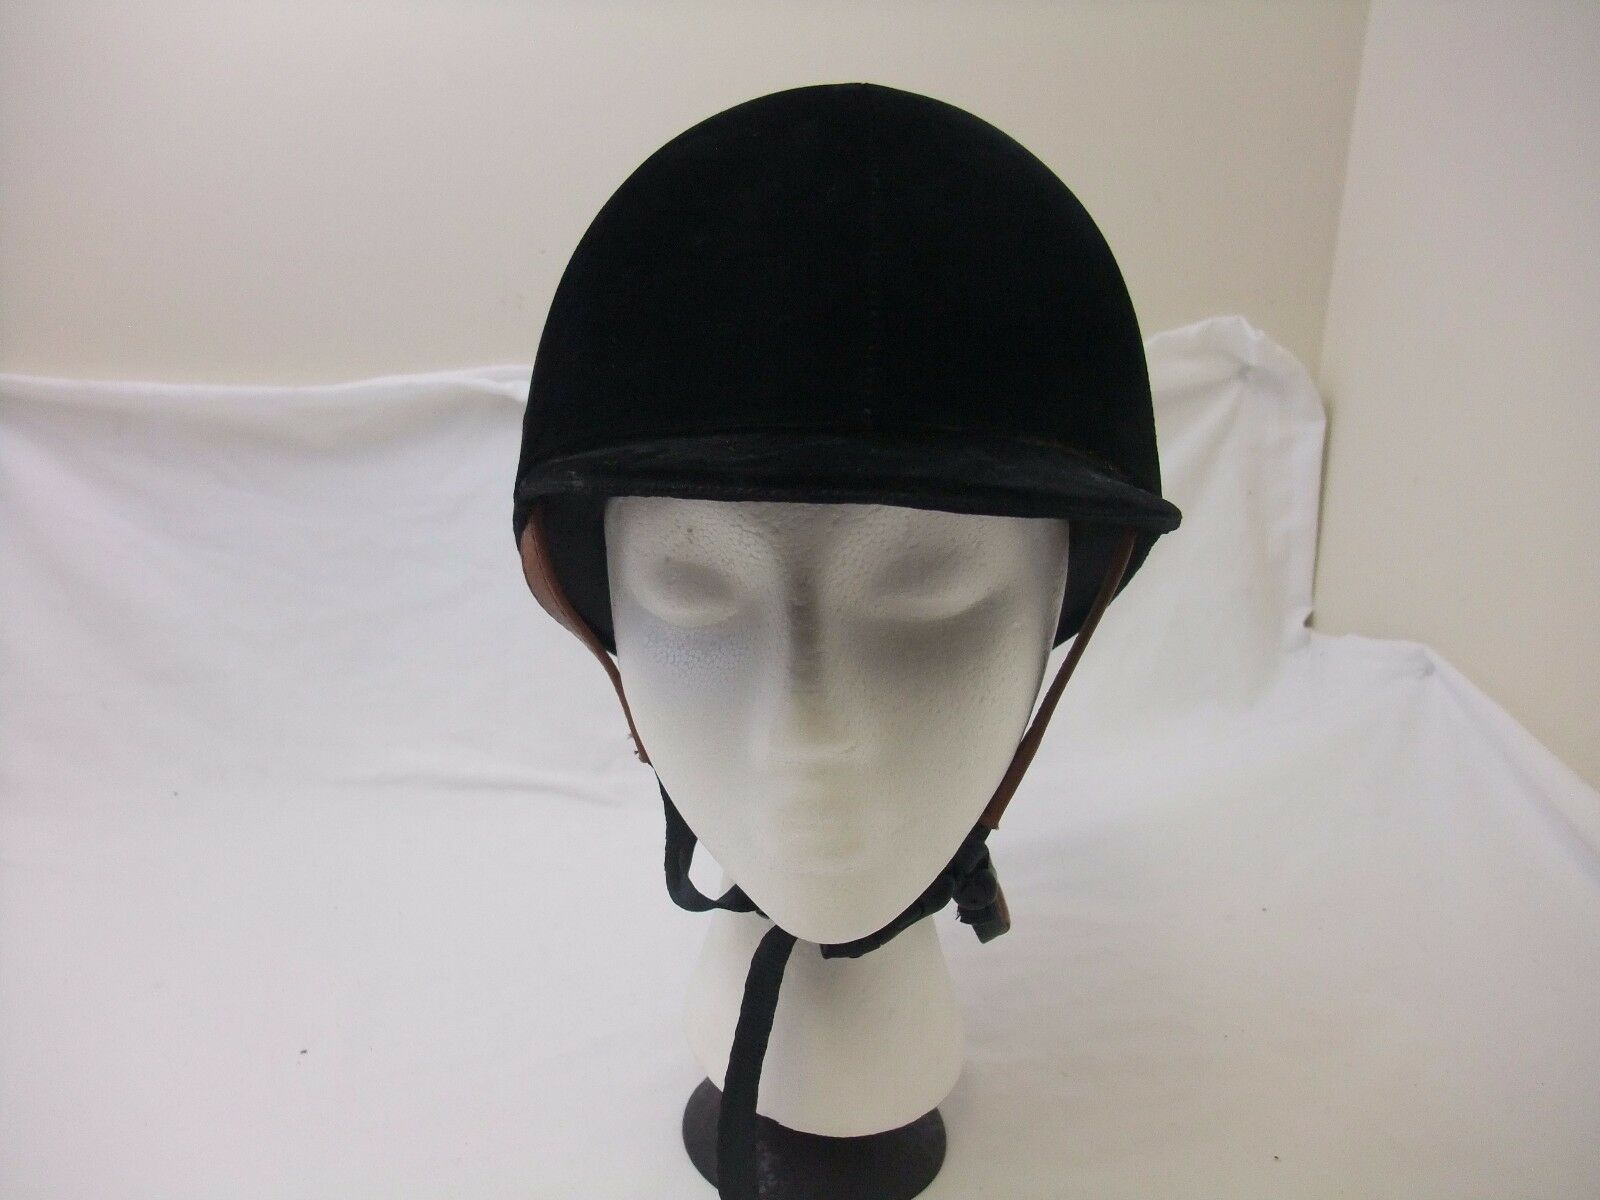 Vintage  IRH ATH Riding Helmet Size Medium  save 60% discount and fast shipping worldwide